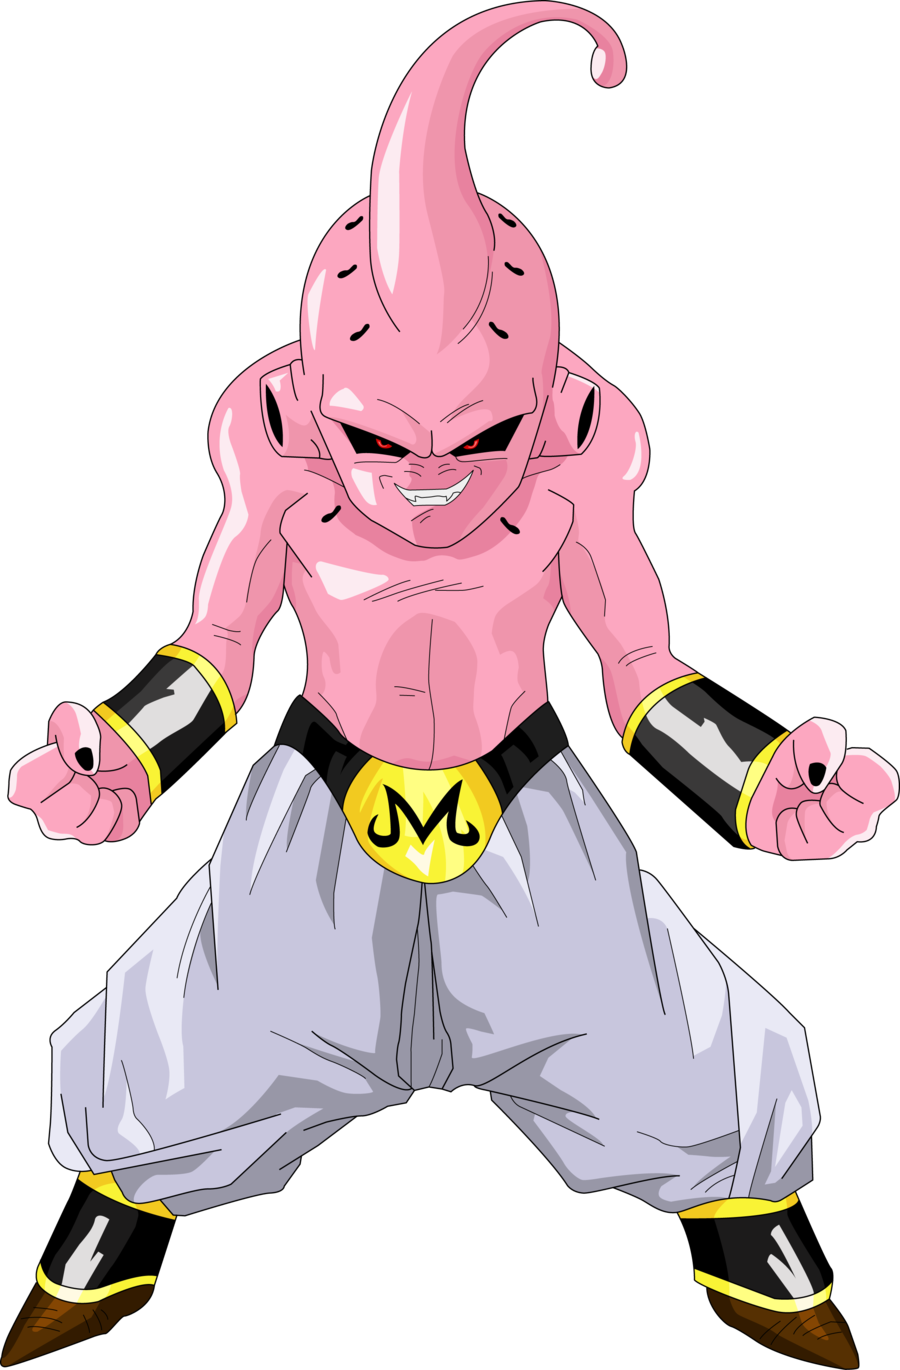 Kid Buu Disney Versus Non Disney Villains Wiki Fandom Powered By